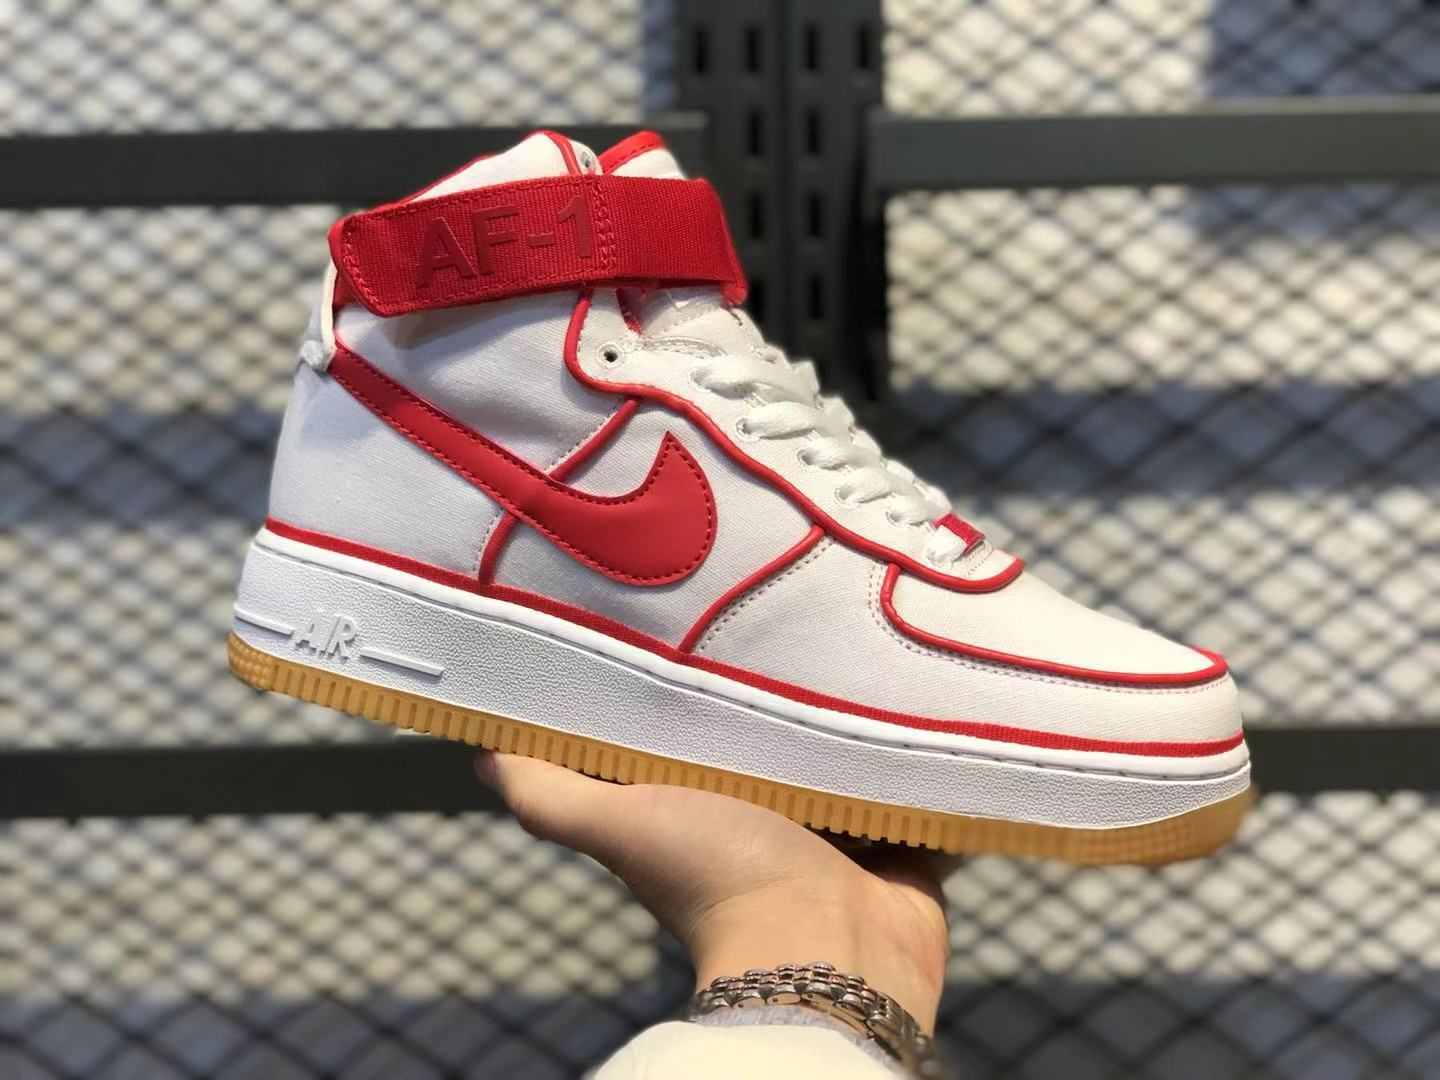 Nike Air Force 1 High White/University Red 806403-101 Men's Athletic Sneakers